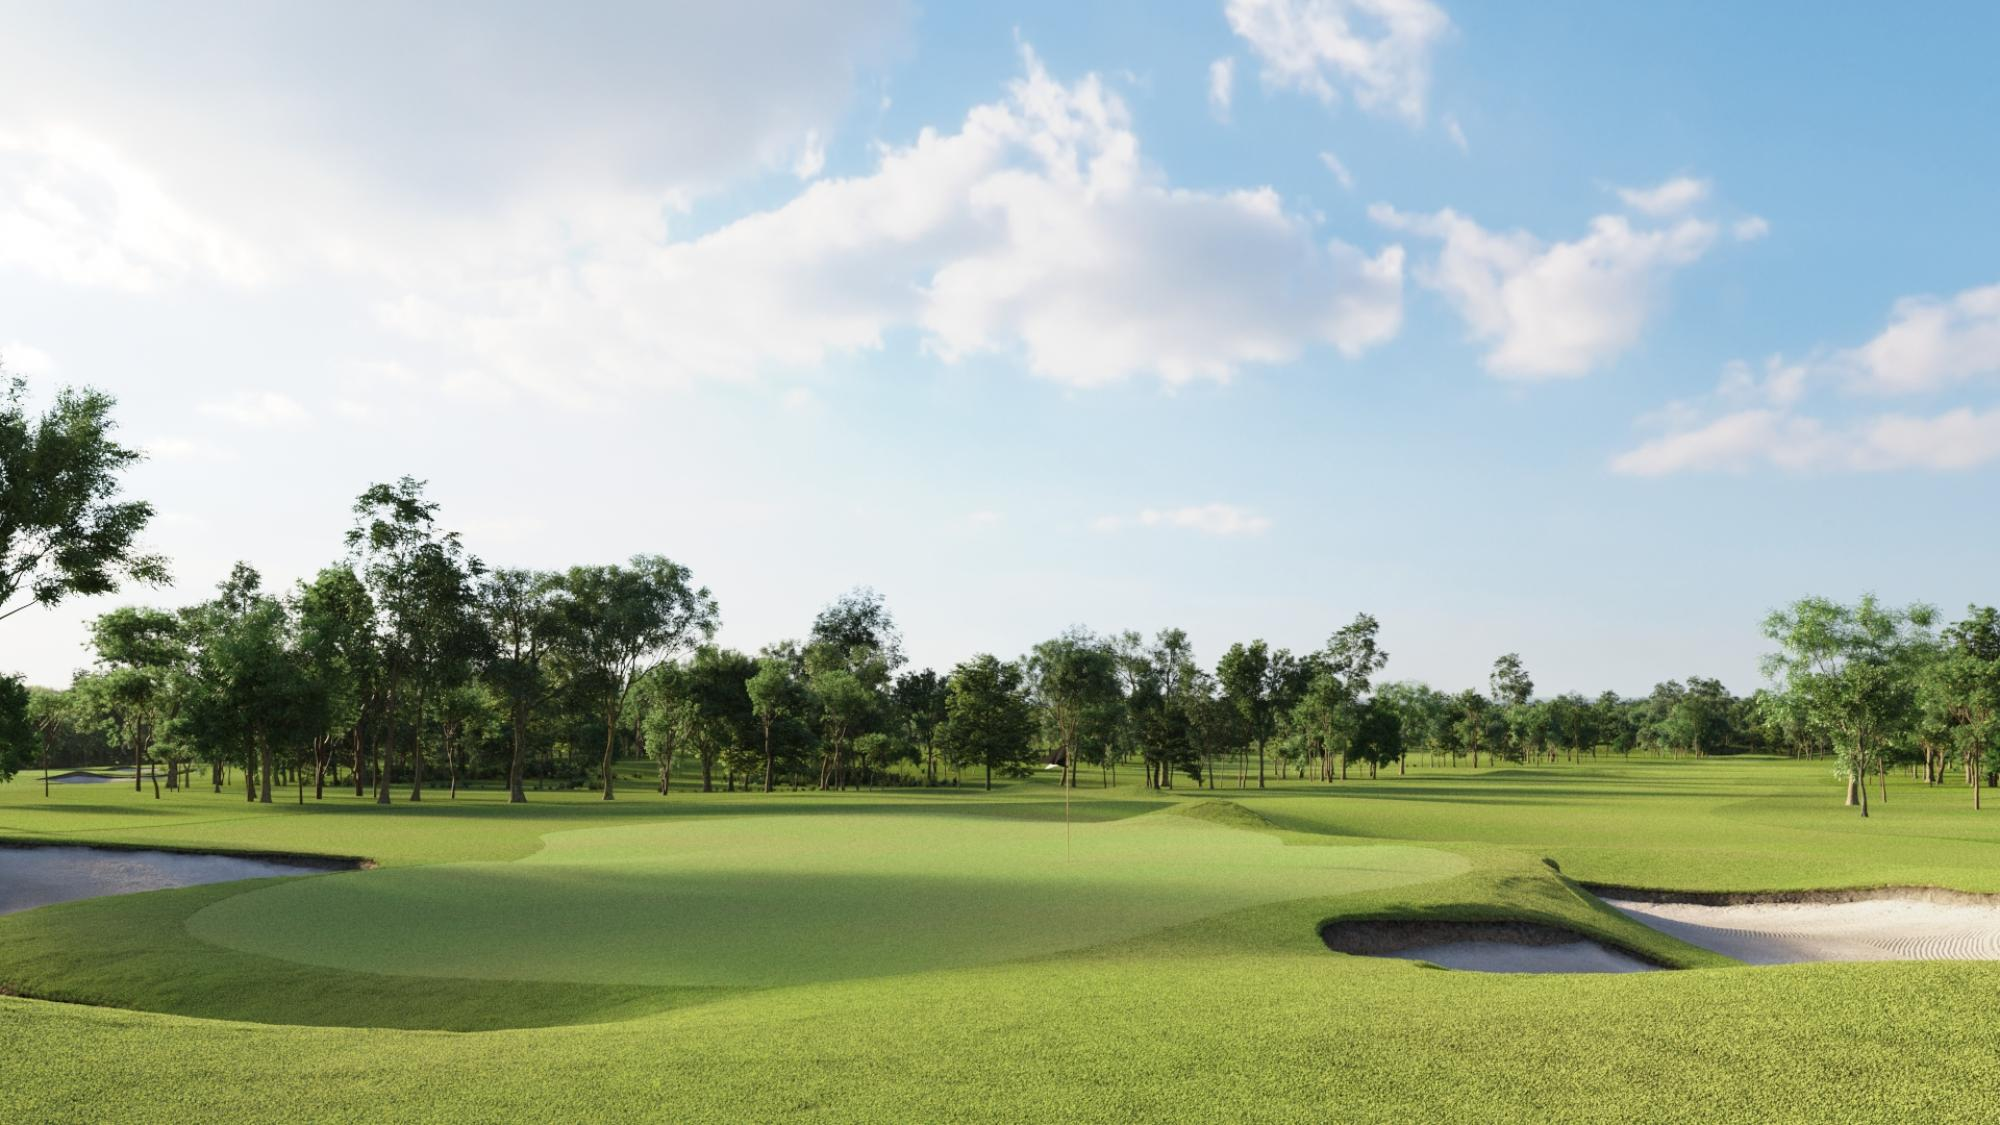 The Bangpra Golf Club's beautiful golf course within dazzling Pattaya.